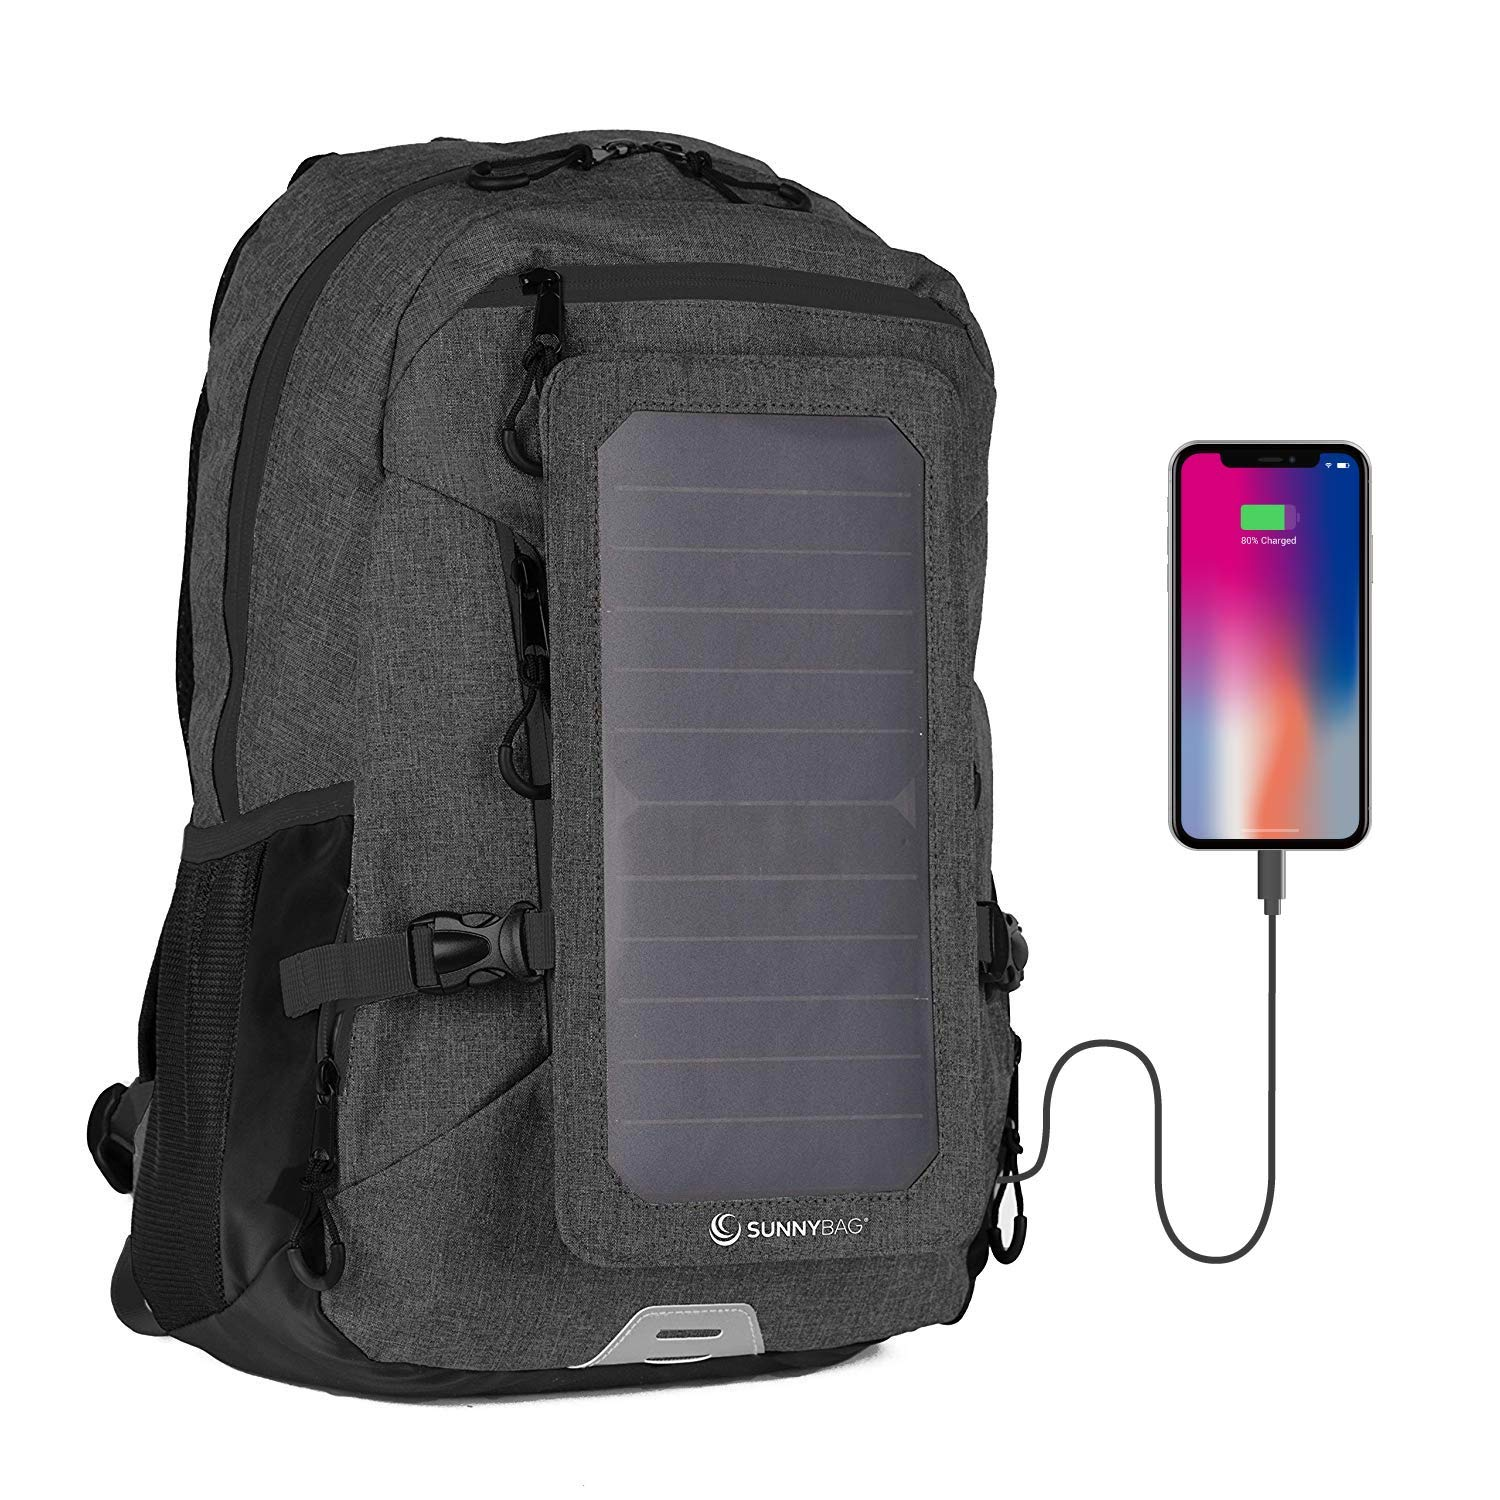 Sunnybag Explorer+ Solar Backpack | World's Strongest Solar Panel for Charging Smartphones and All USB-Devices on The go | 15L Volume and 15'' Laptop Compartment | Black/Black by SUNNYBAG